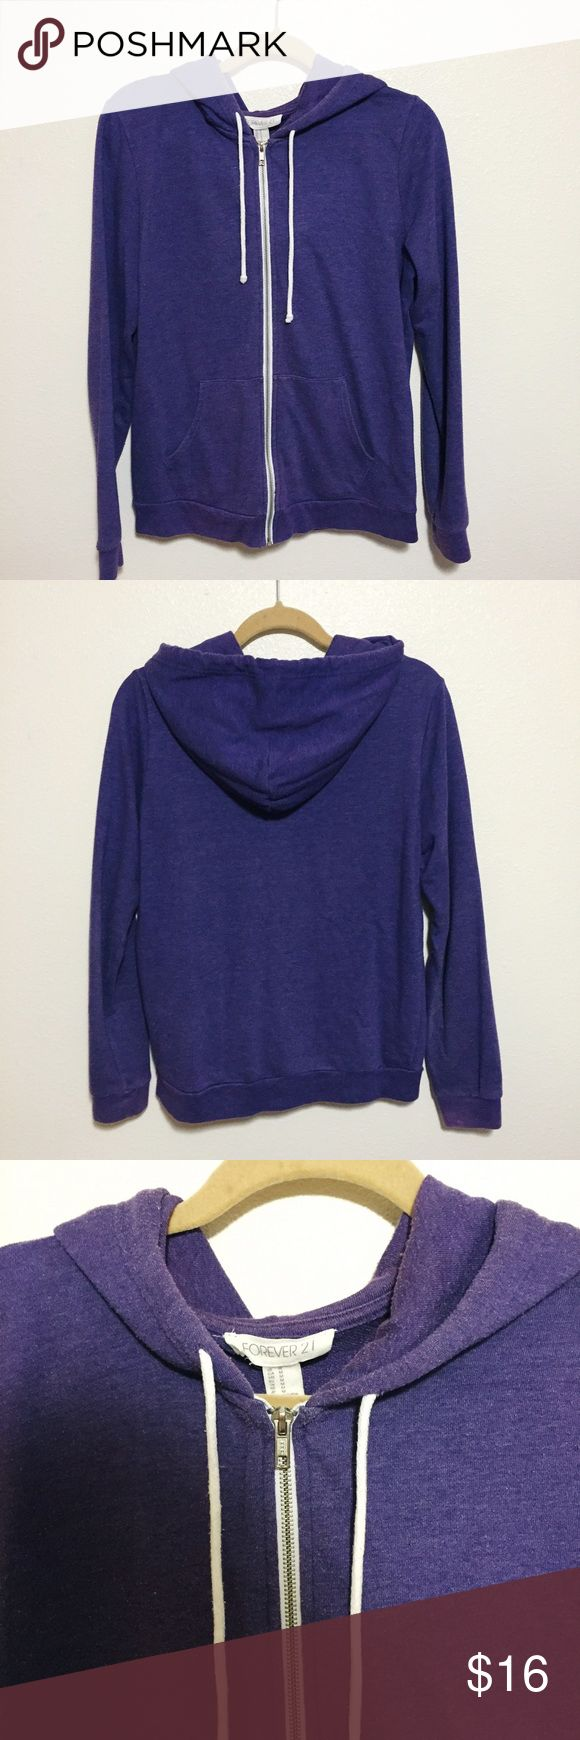 Forever 21 purple zip-up hoodie Purple zip-up hoodie. Forever 21 Tops Sweatshirts & Hoodies